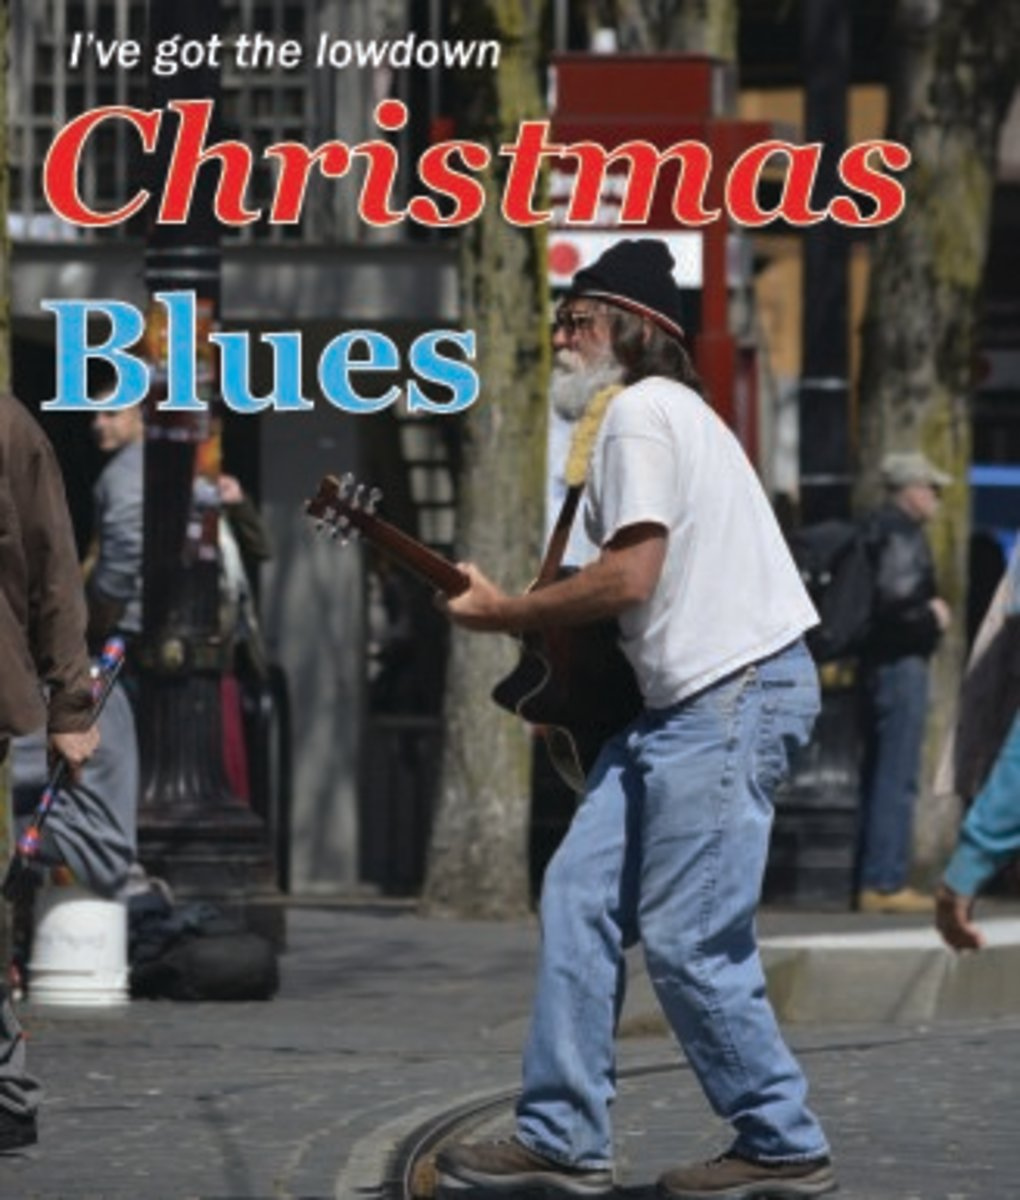 Christmas Blues: Ten Blue Songs About Christmas